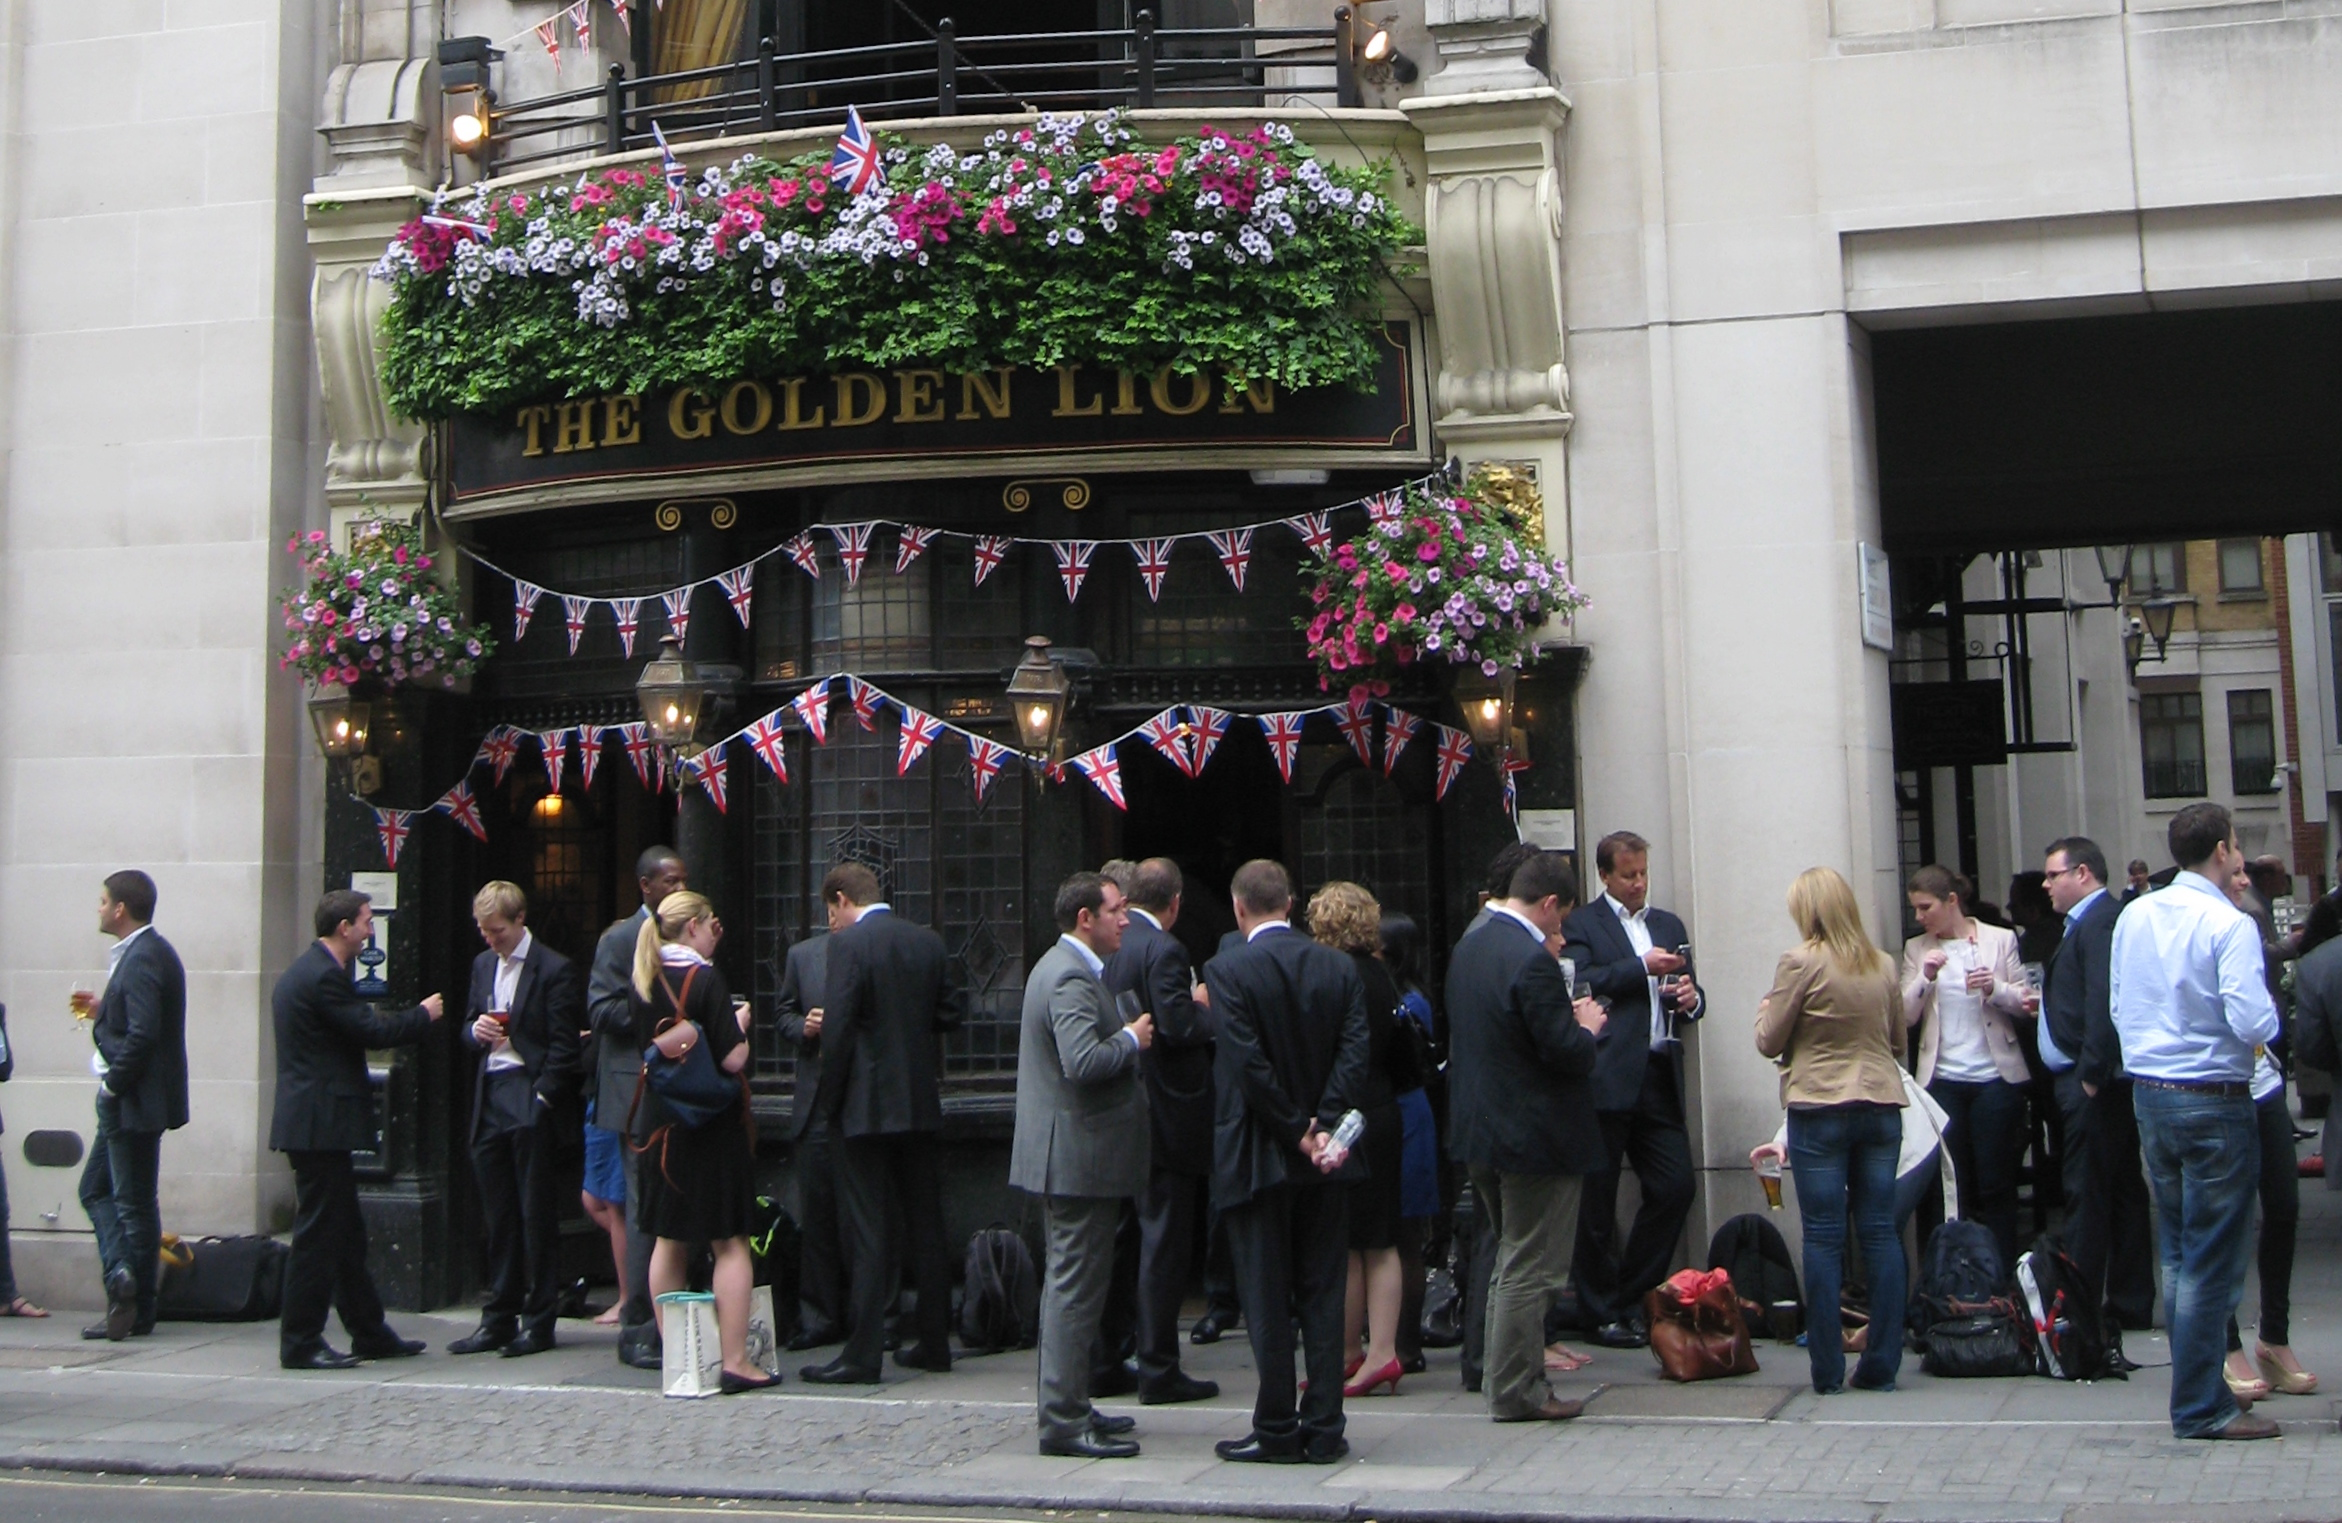 A London pub at Happy Hour. Photo by me